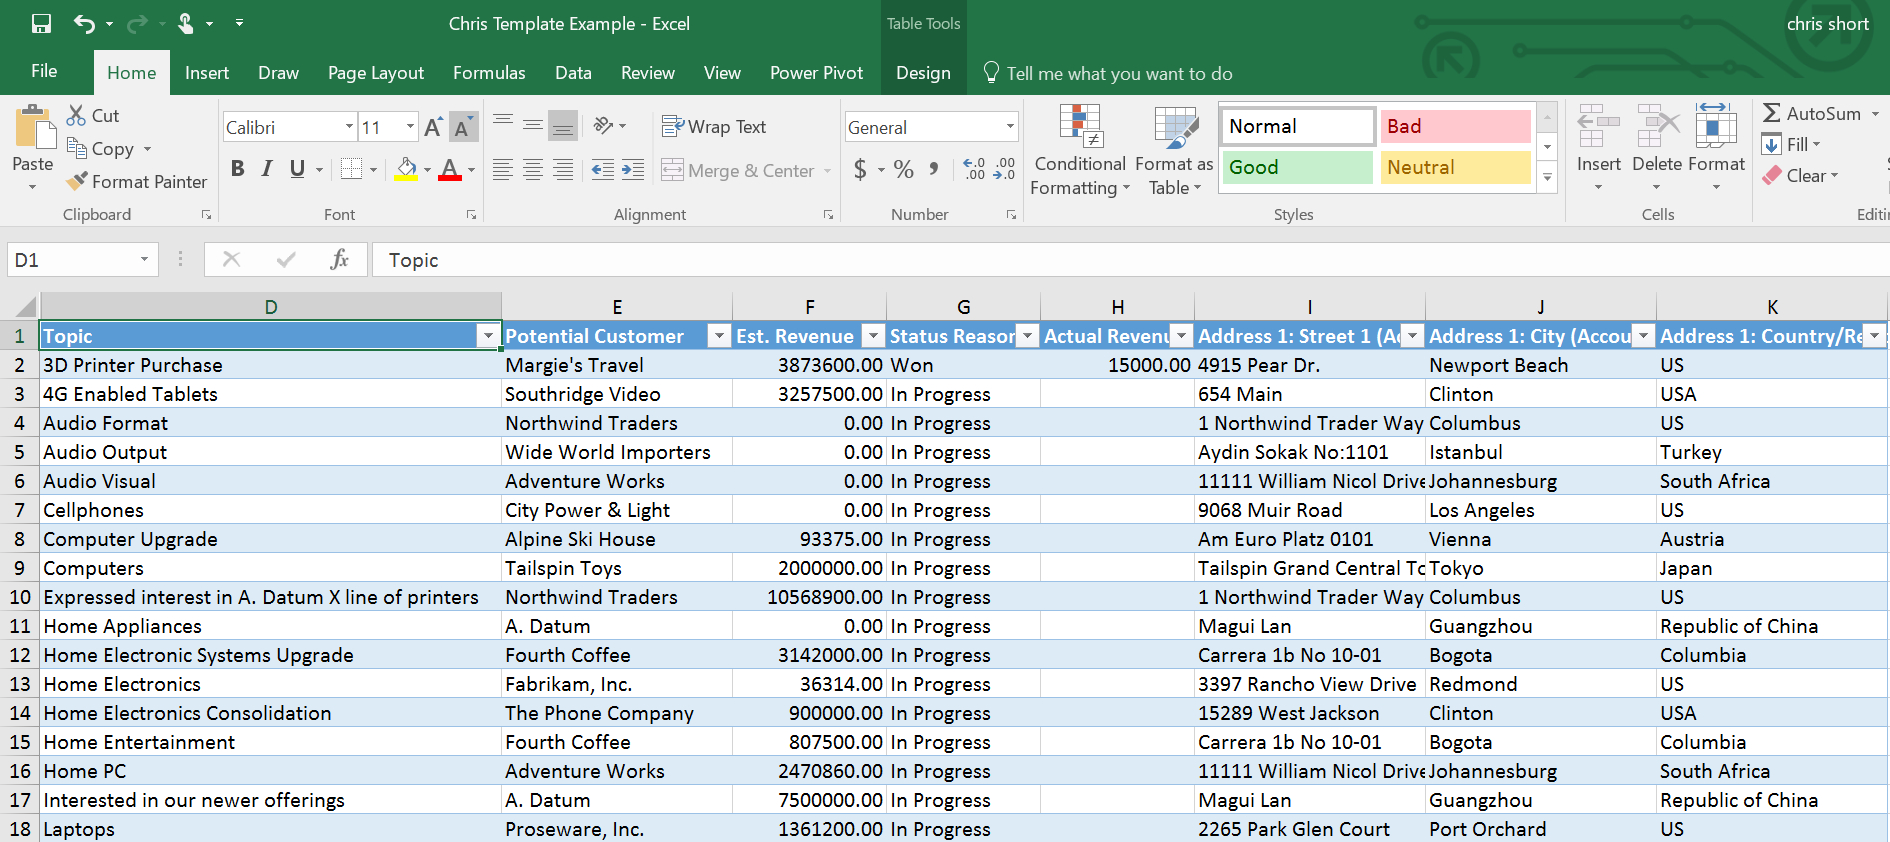 Microsoft Dynamics Crm & Microsoft Excel: Excel Templates, An And Crm In Excel Template